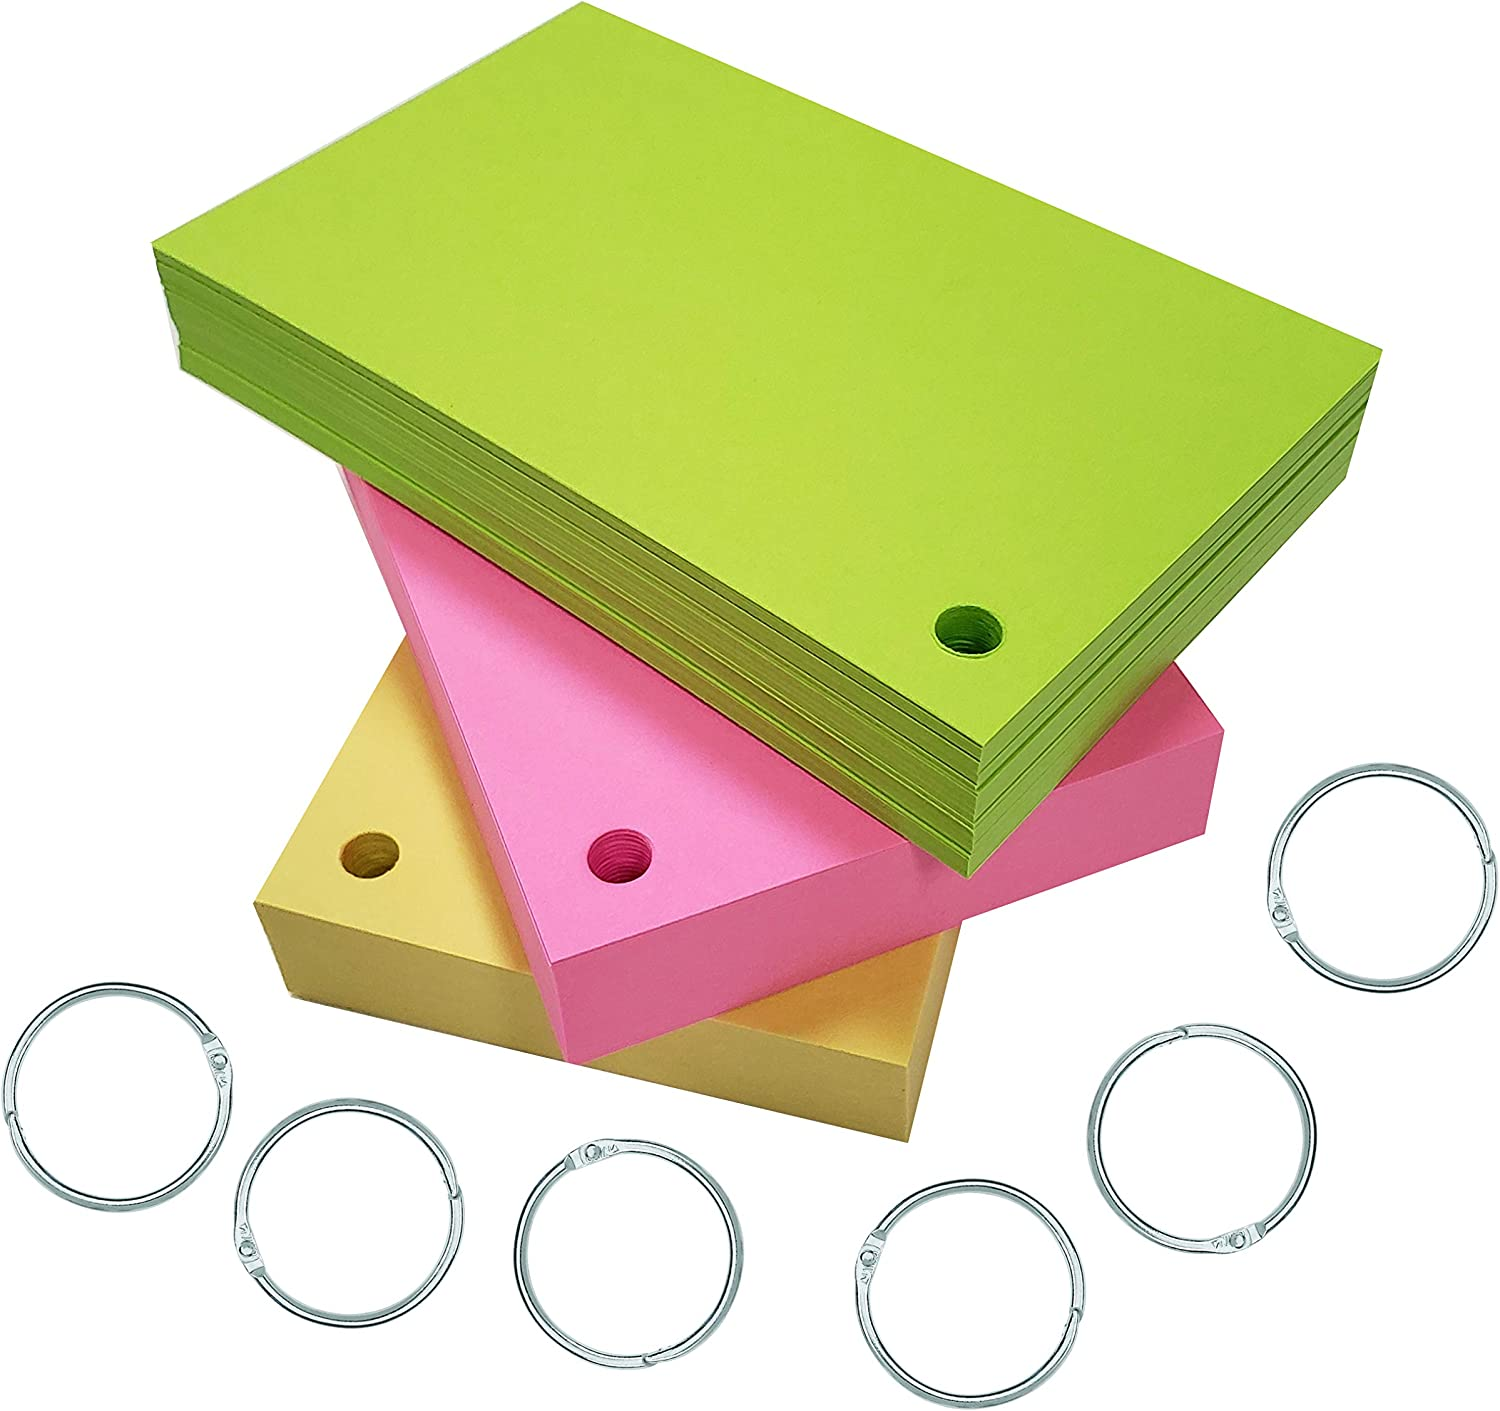 Debra Dale Designs - 3 X 5 Inch Index Cards - Premium Smooth Extra Heavy 100# Cardstock - 50 Each of 3 Astrobright Colors - Hole Punched with 6 Rings - 270 GSM - Great for Studying & Note Taking